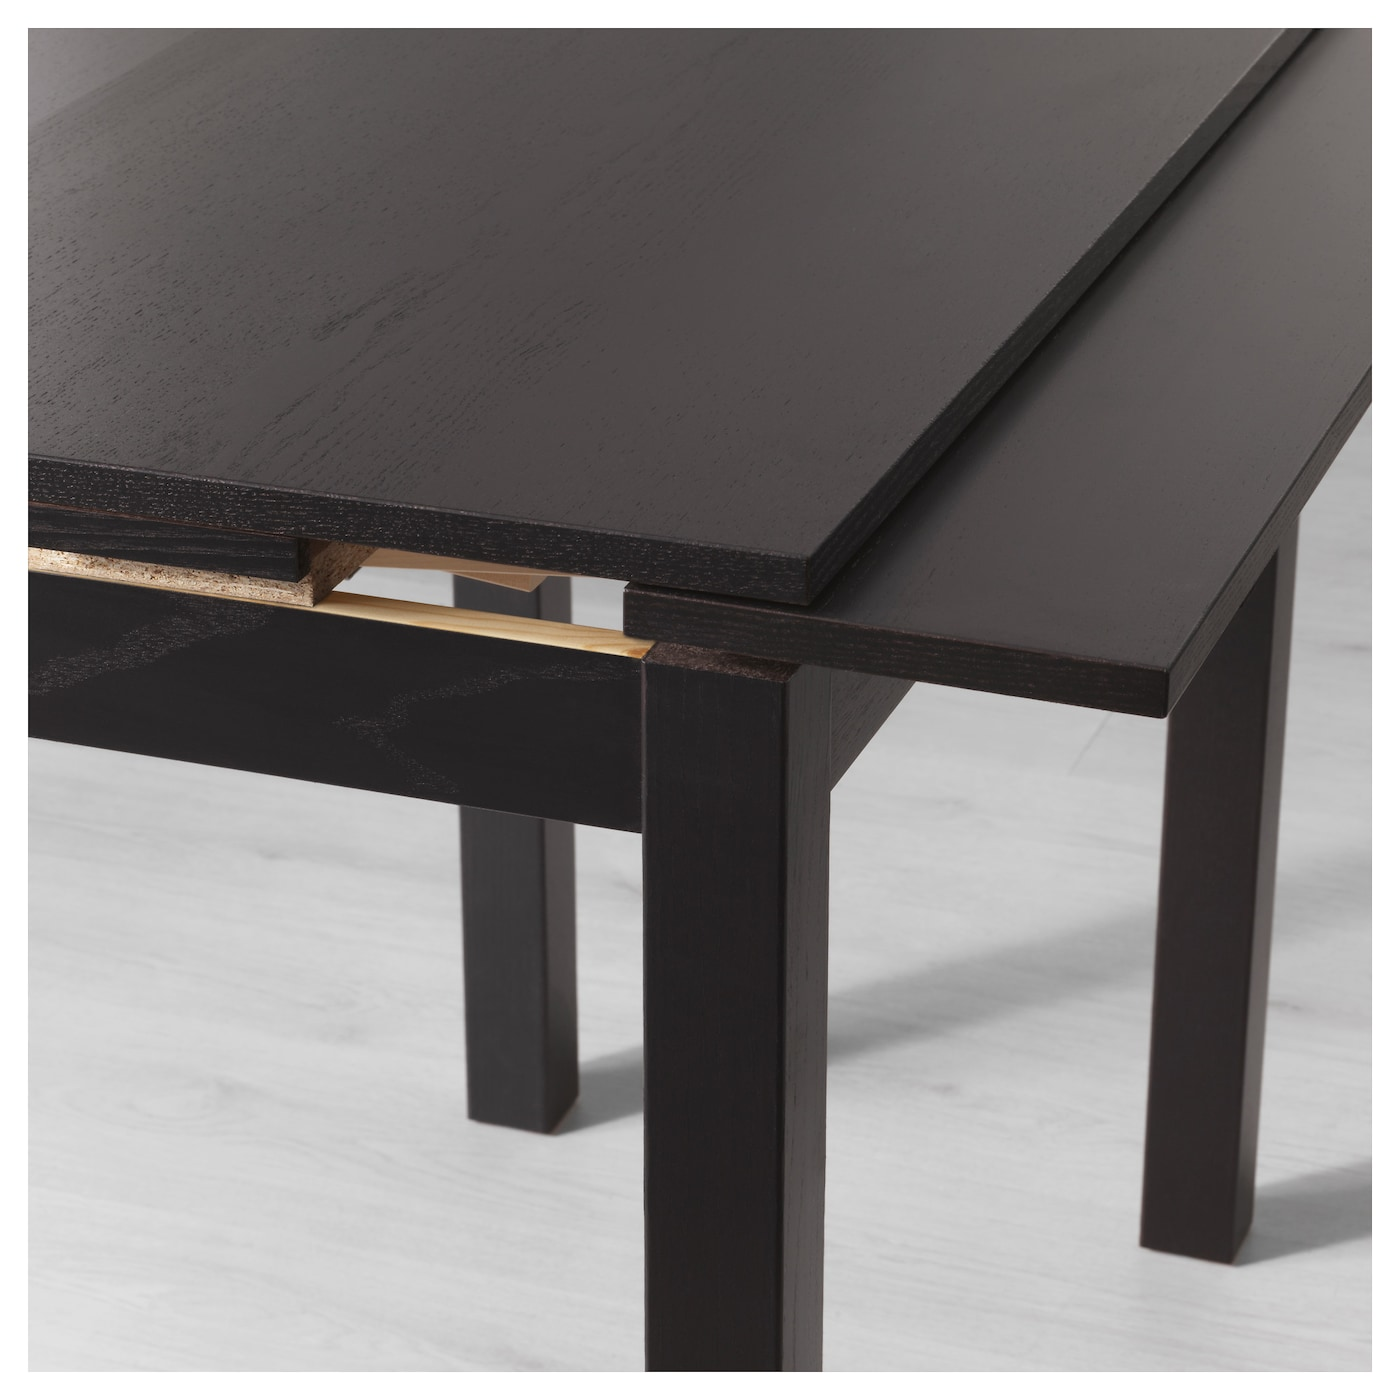 BJURSTA Extendable table Brown black 507090x90 cm IKEA : bjursta extendable table brown black0443655pe594433s5 from www.ikea.com size 2000 x 2000 jpeg 363kB